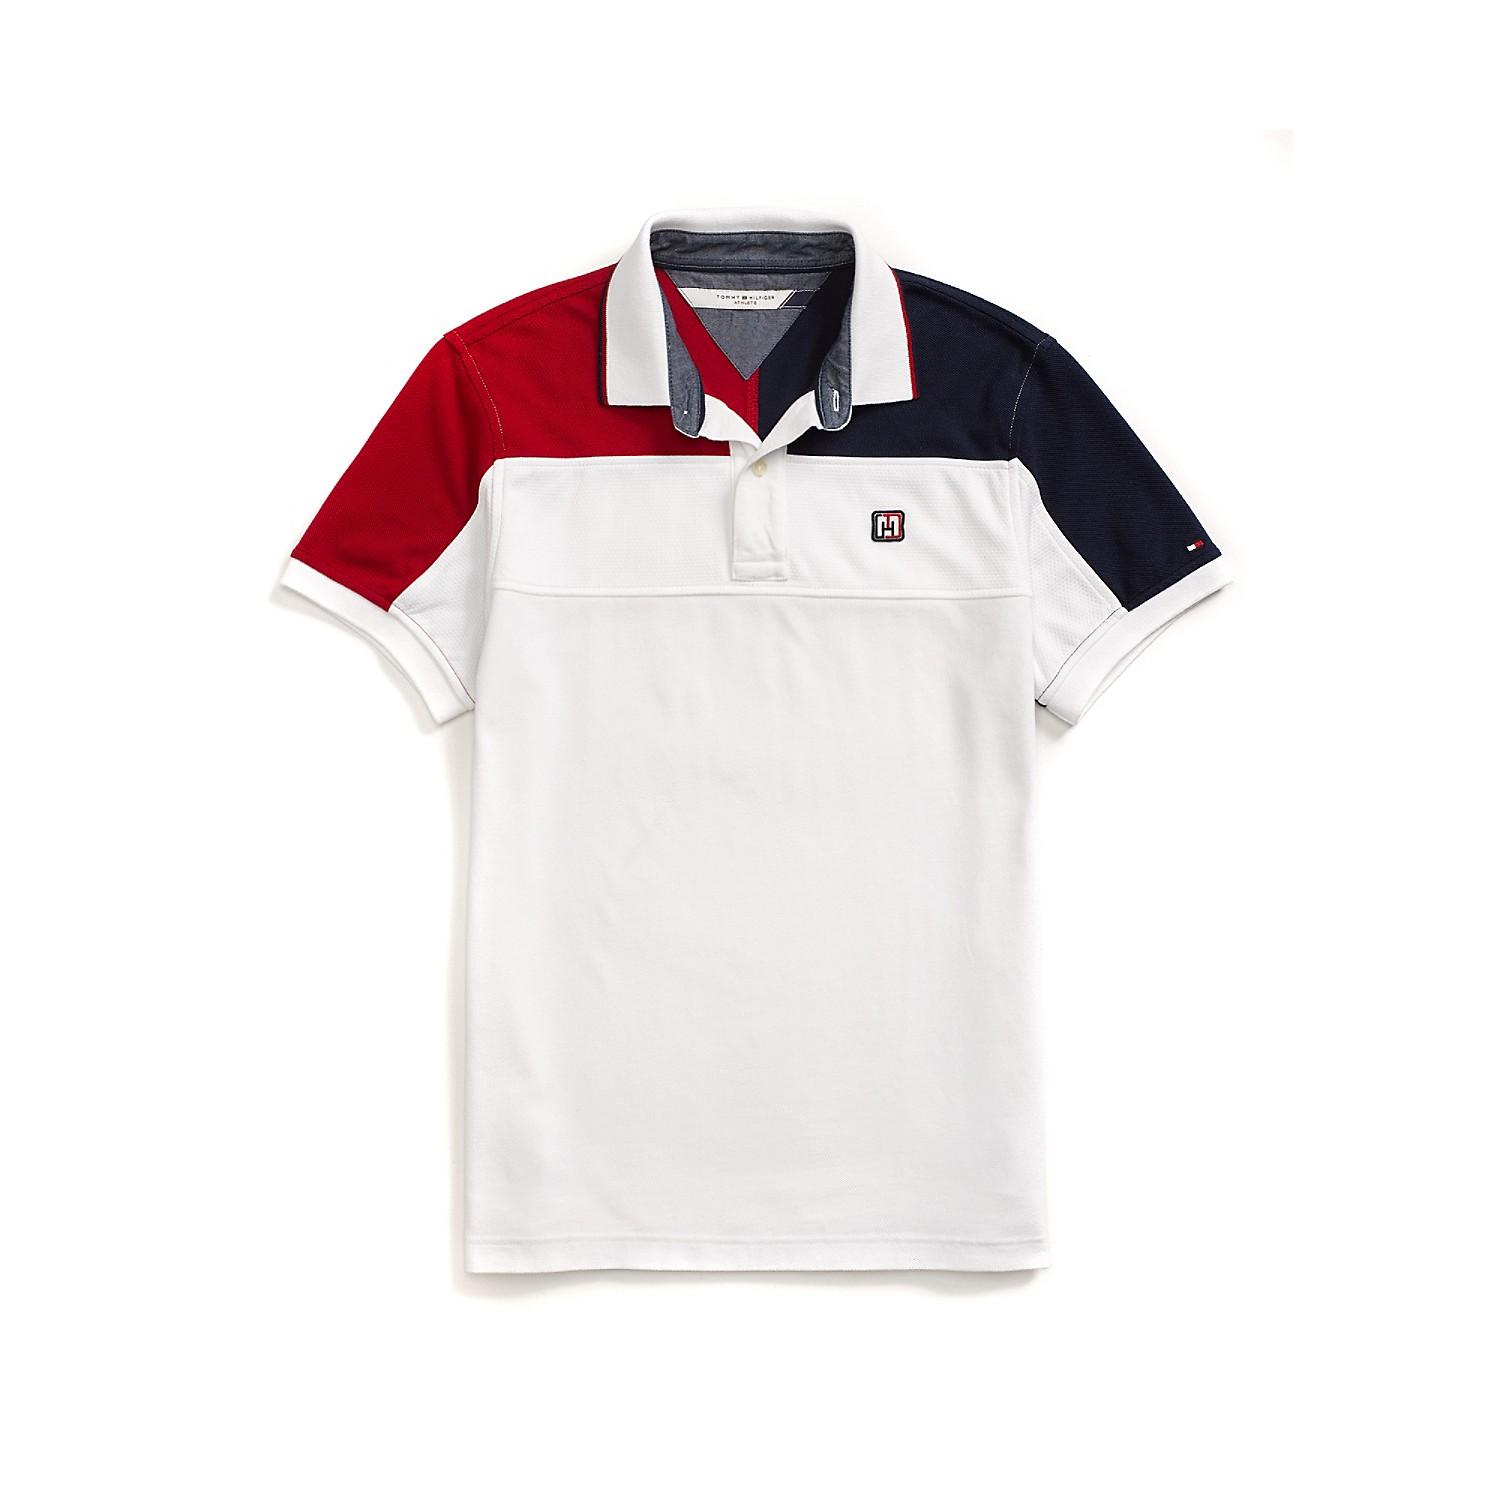 Tipo Polo Tommy Hilfiger Blanco - Madeira ropa importada 6c2c38447192b